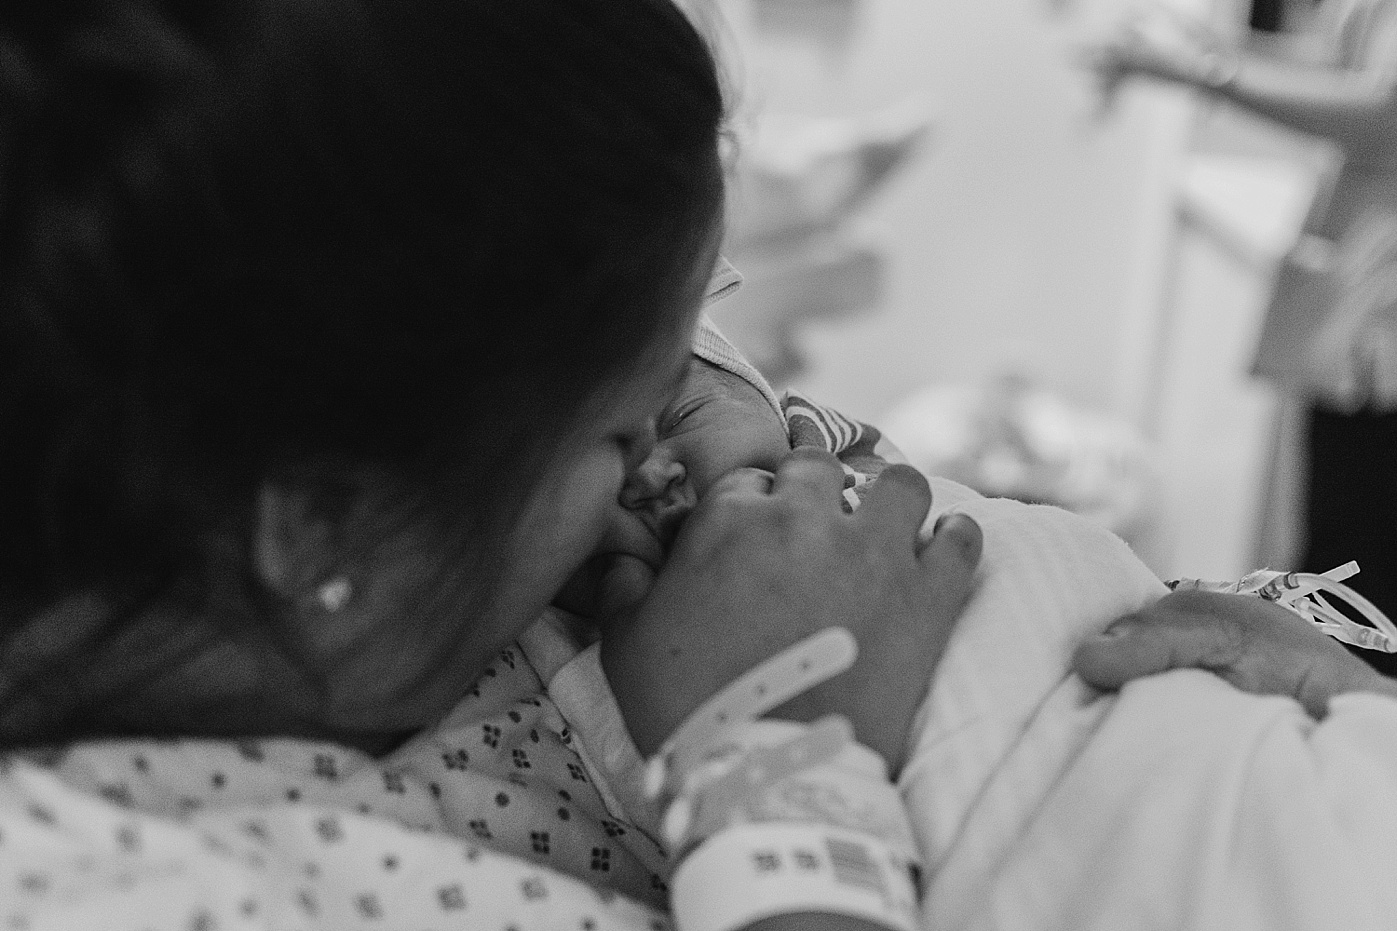 mom holding newborn baby girl squeezing cheeks documentary candid family photography